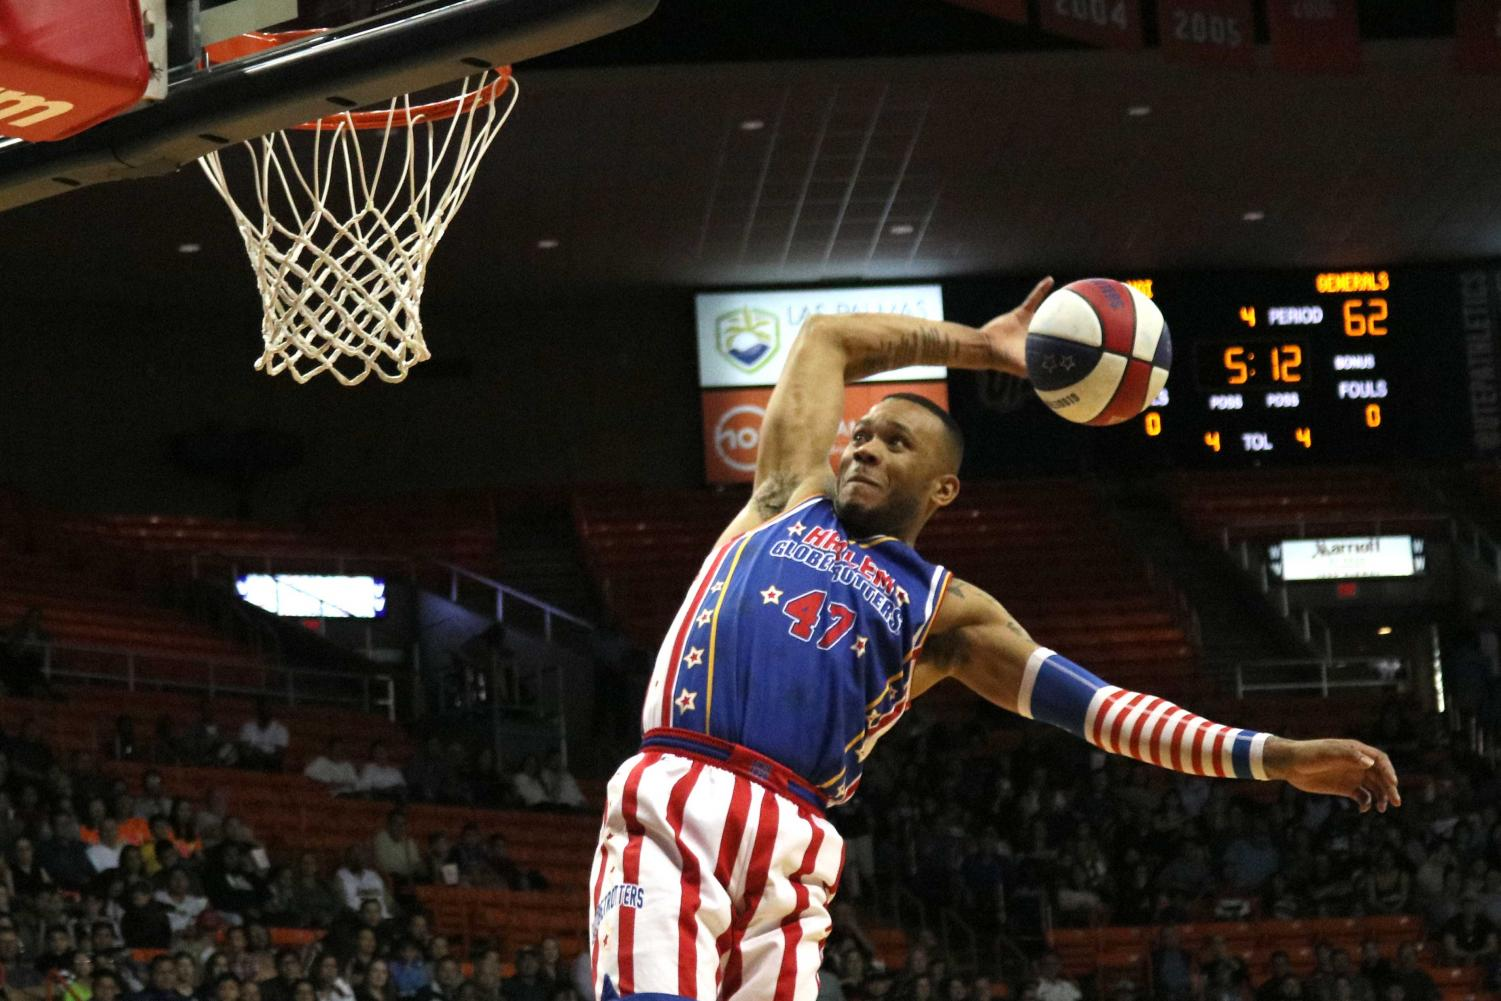 The+Harlem+Globetrotters+defeats+the+Washington+Generals+at+the+Don+Haskins+Center+in+El+Paso%2C+TX%2C+Sunday%2C+March+10%2C+2019.